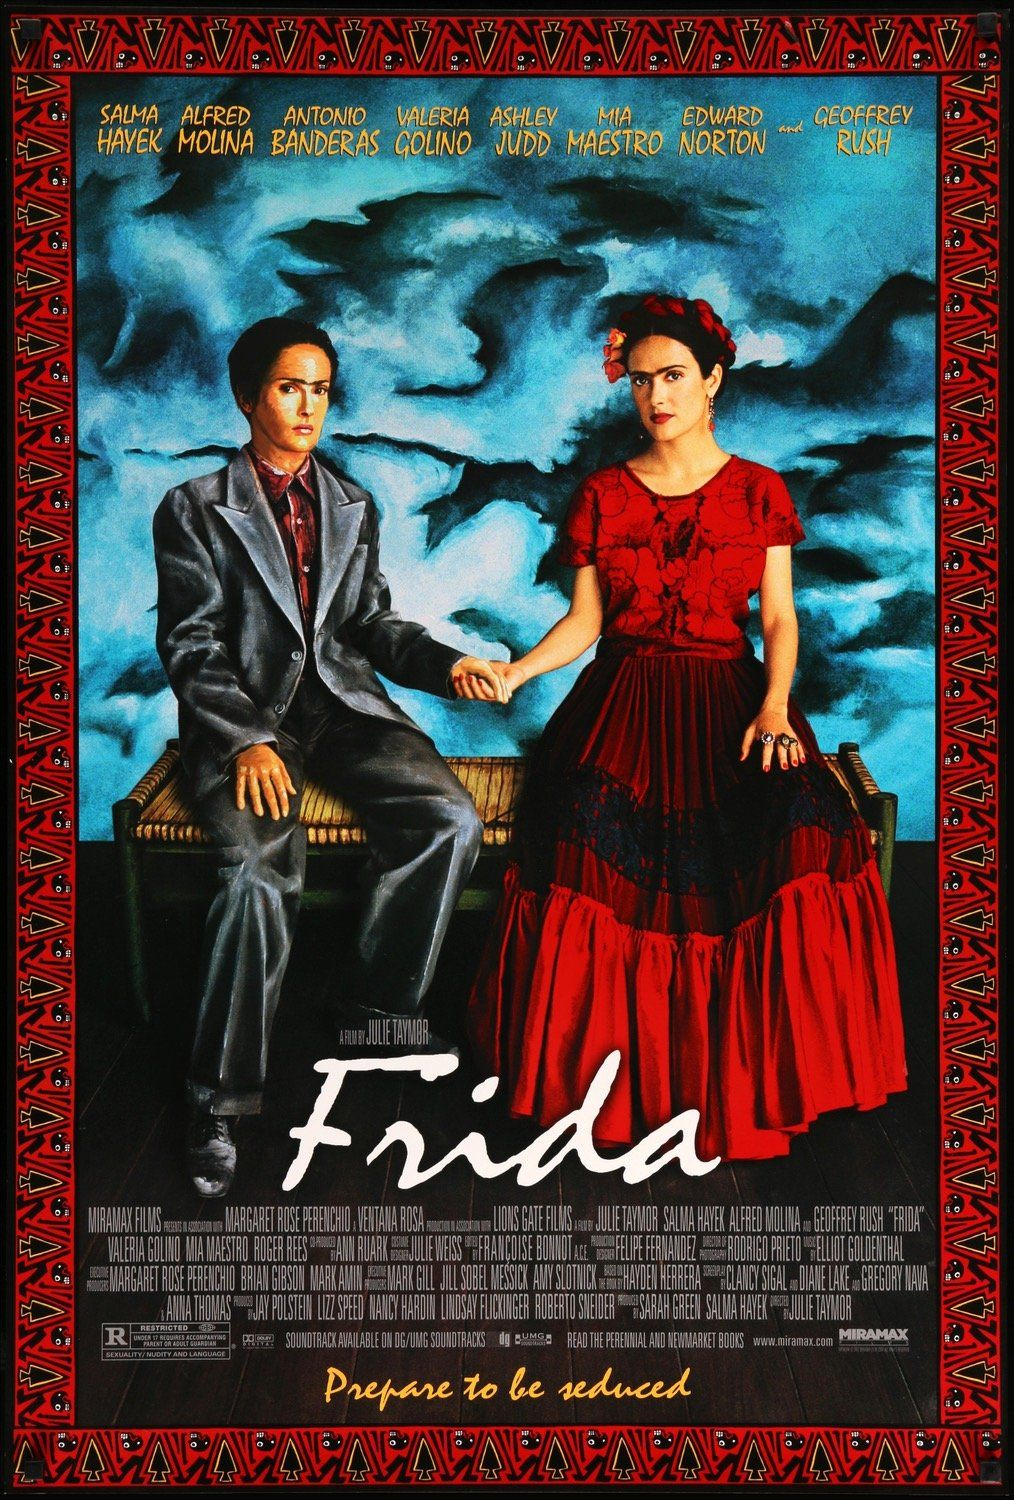 This is an original, rolled, one-sheet movie poster from 2002 for Frida starring Salma Hayek, Alfred Molina, Antonio Banderas, Valeria Golino, Ashley Judd, Mia Maestro, Edward Norton, and Geoffrey Rush. Julie Taymor directed the biographical drama. The single-sided poster measures 27